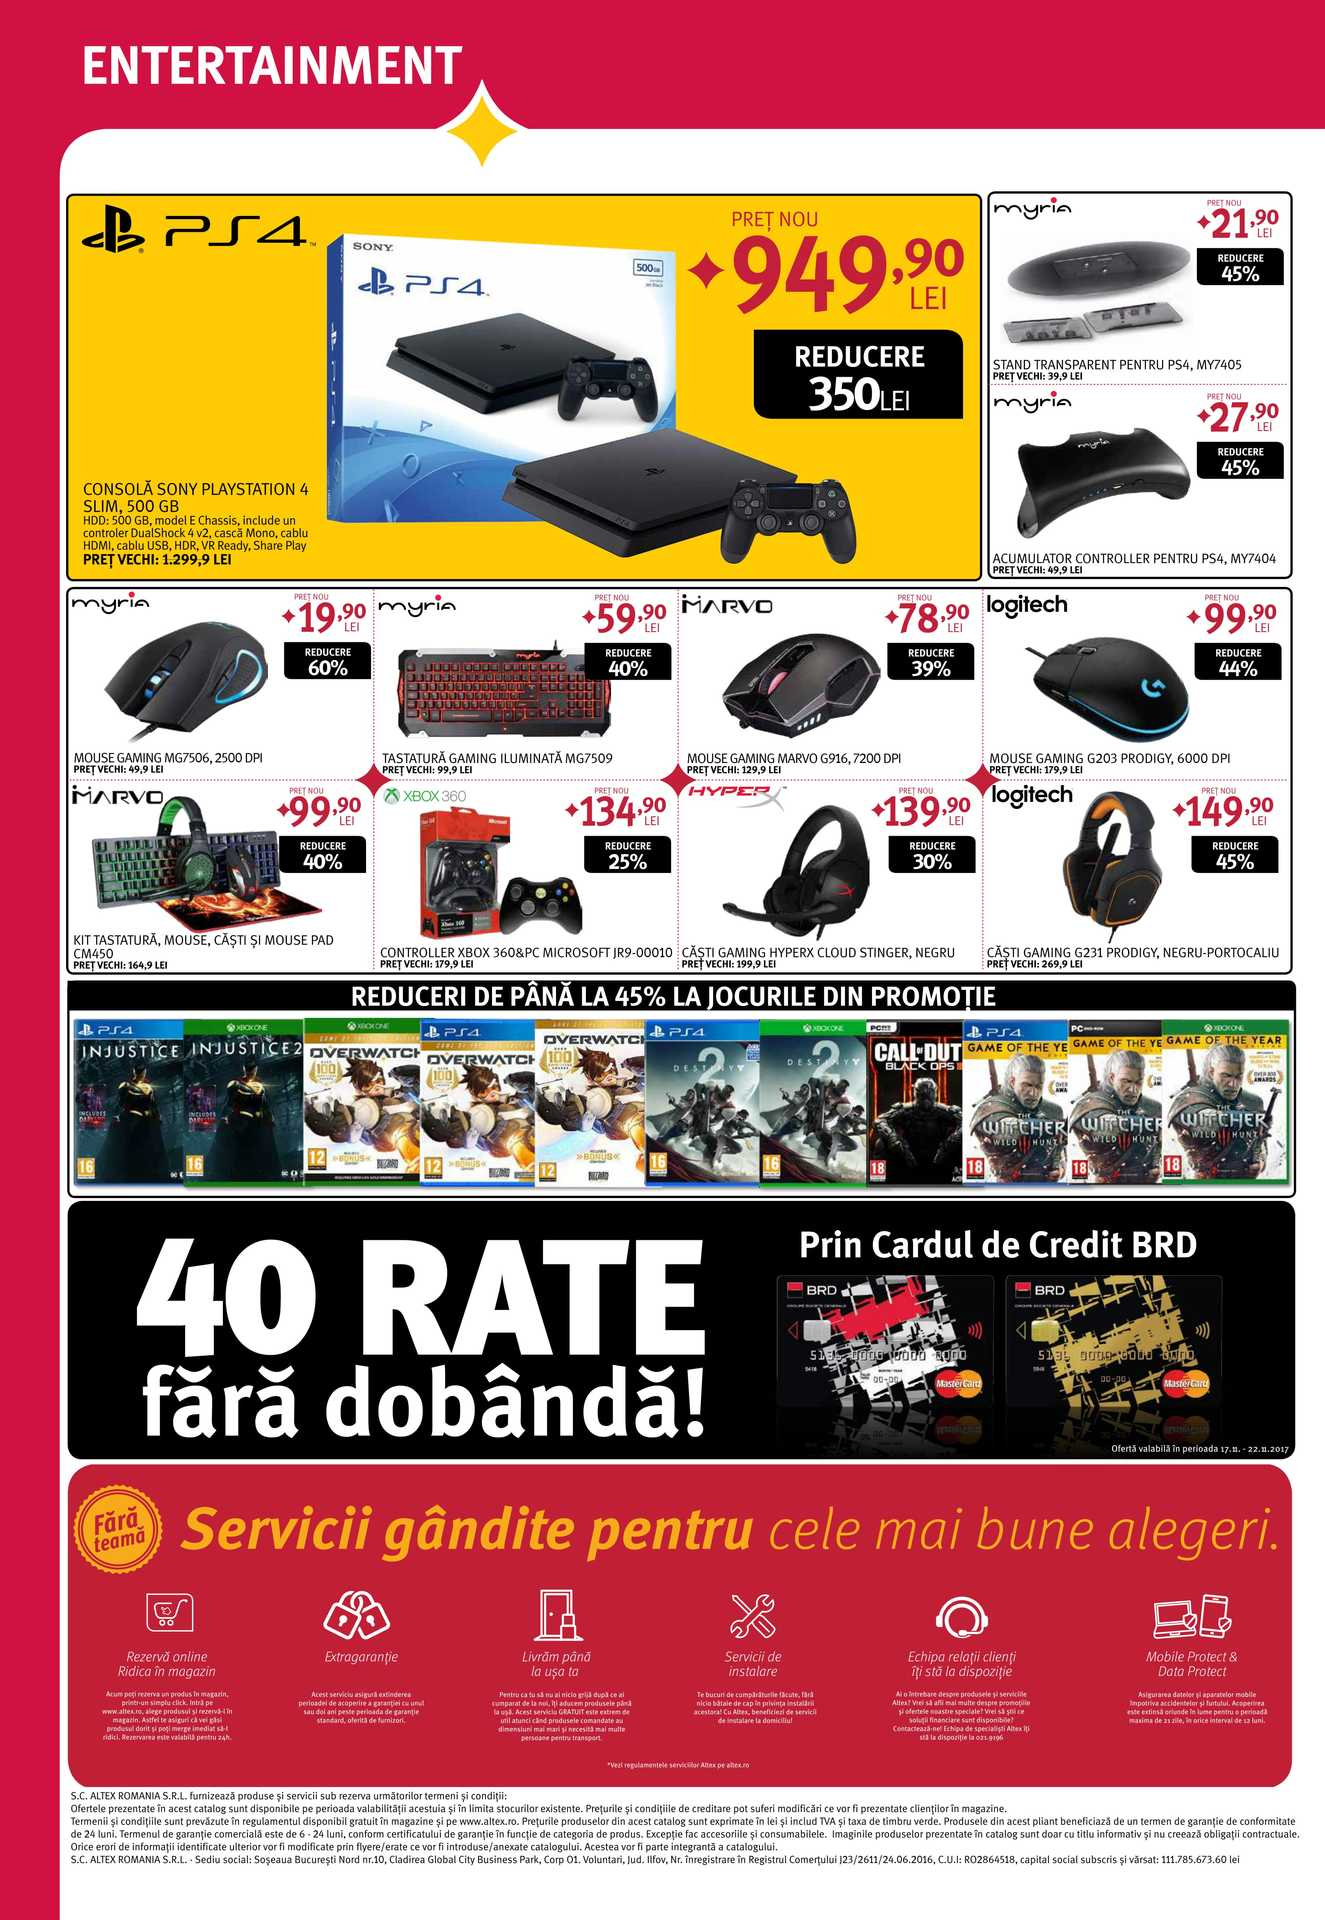 Catalog blackfriday altex 8